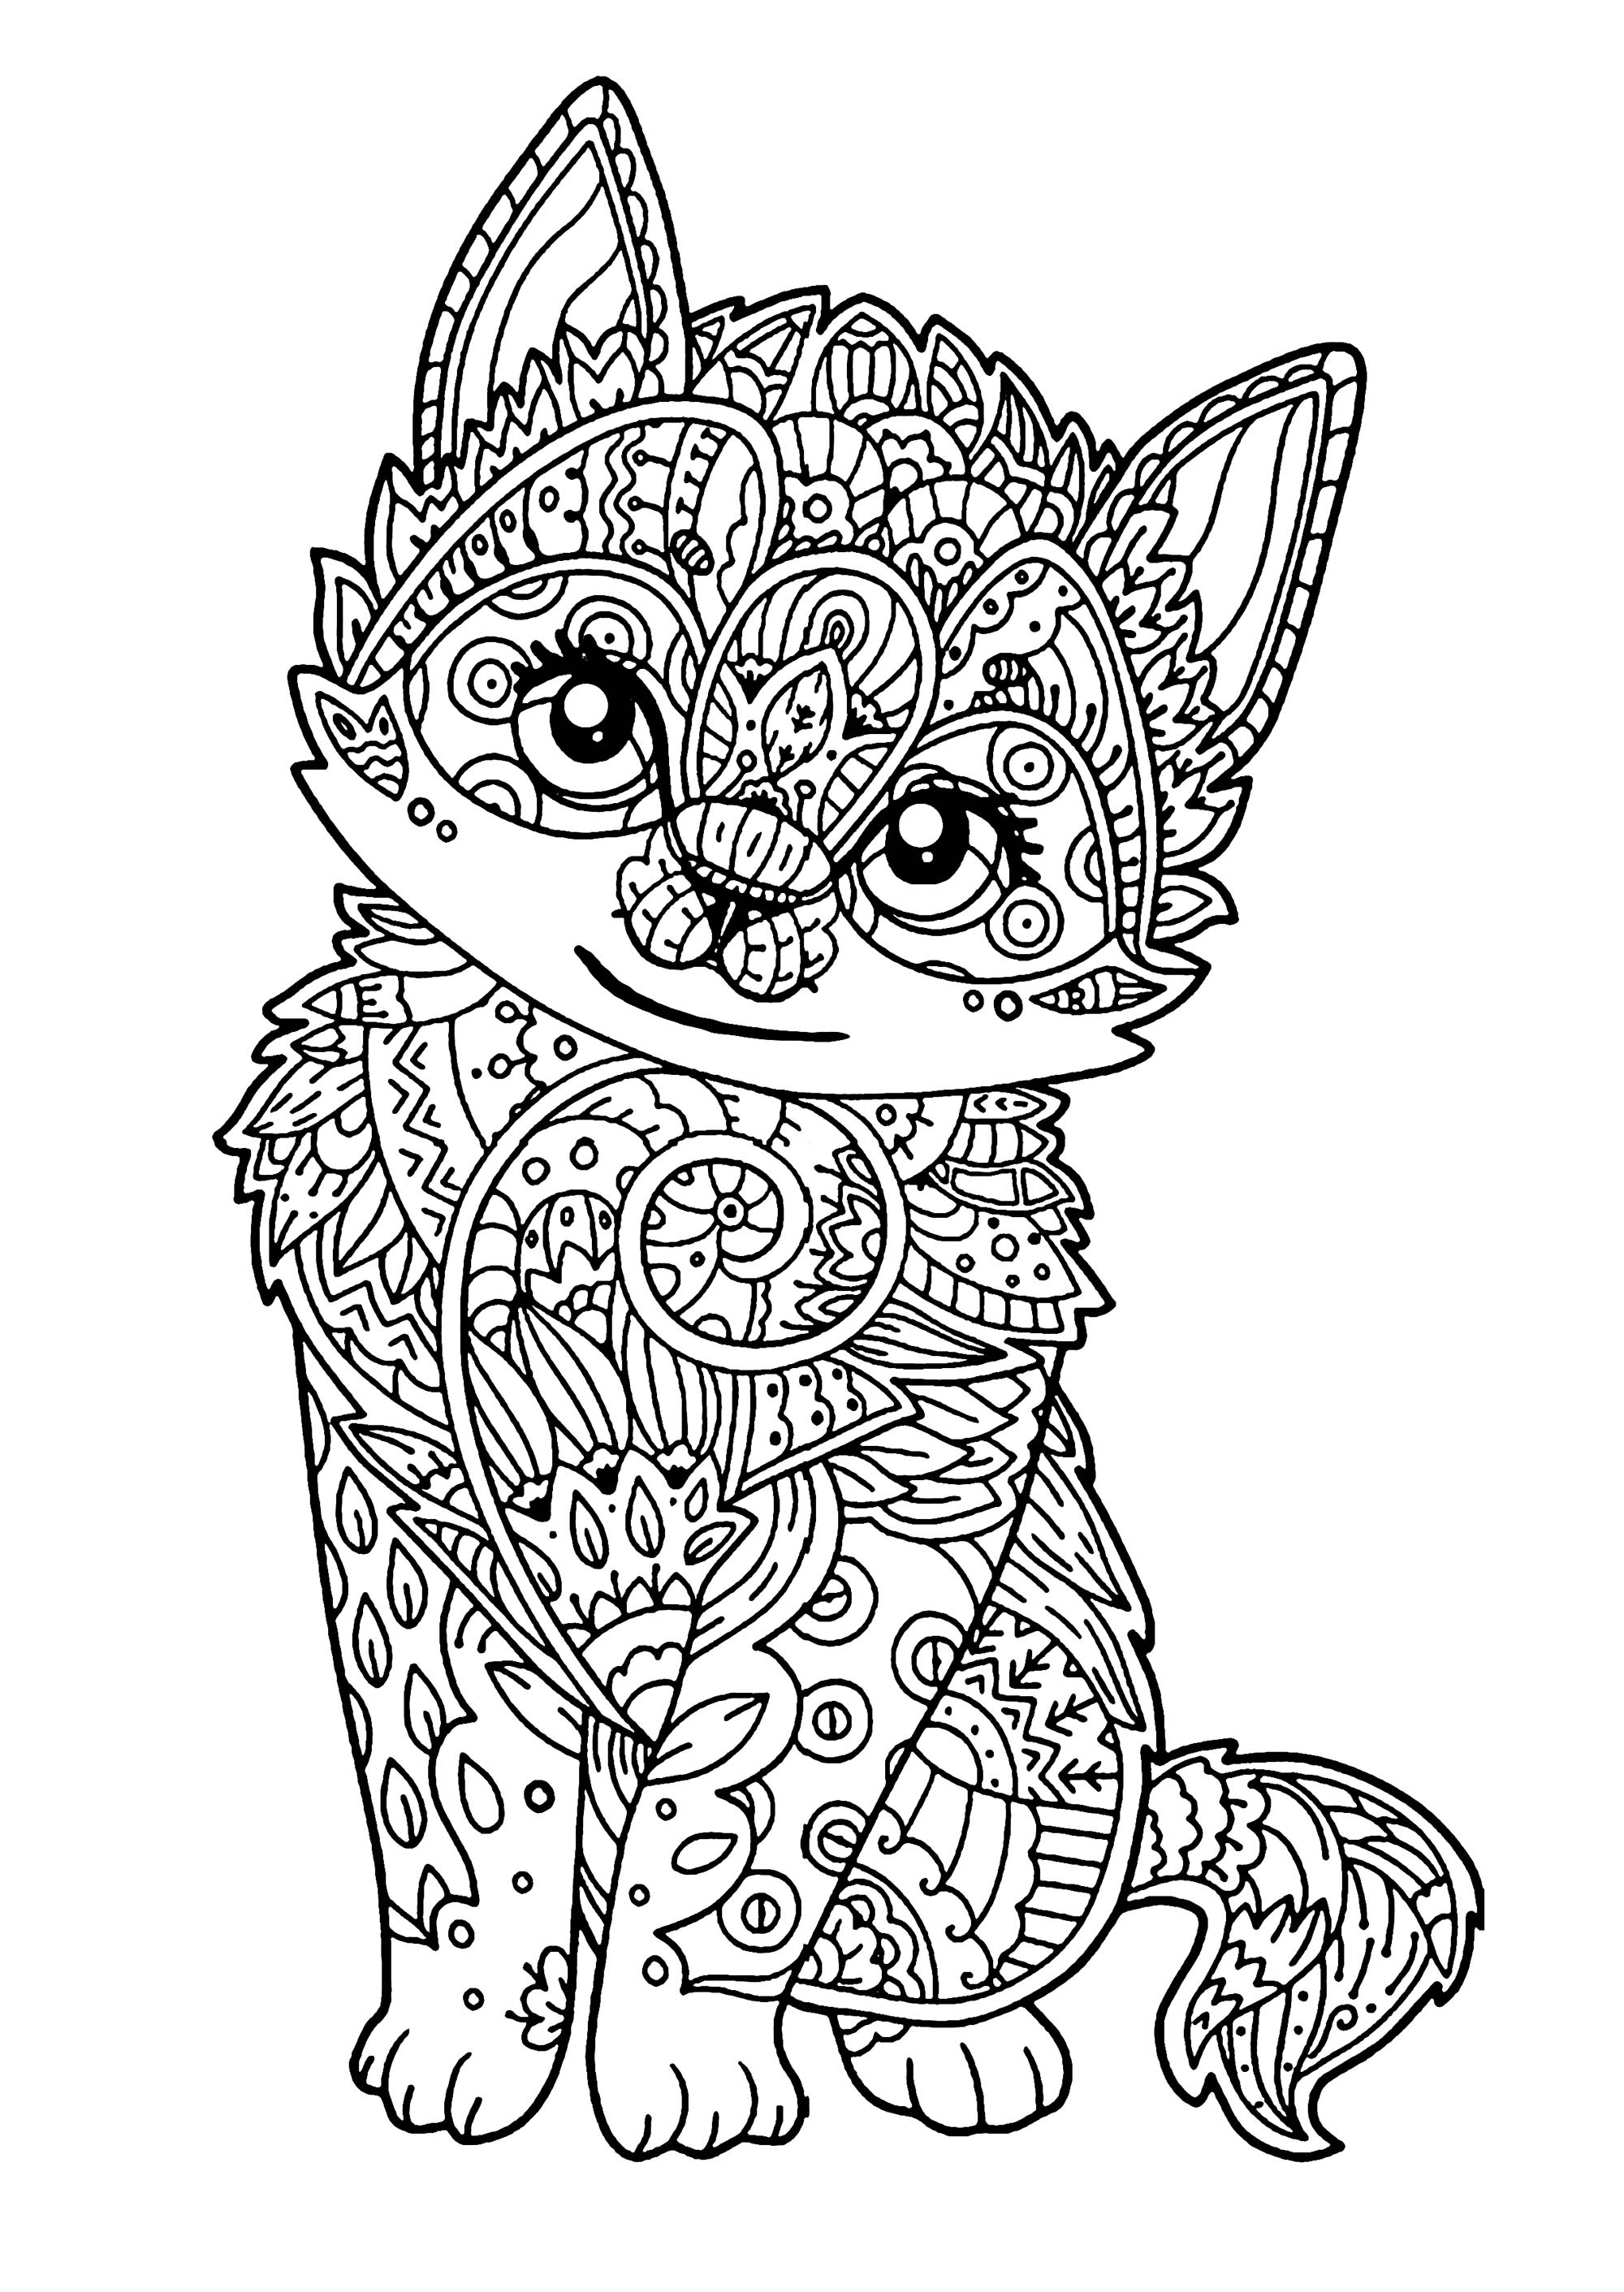 Cats Kids Coloring Pages